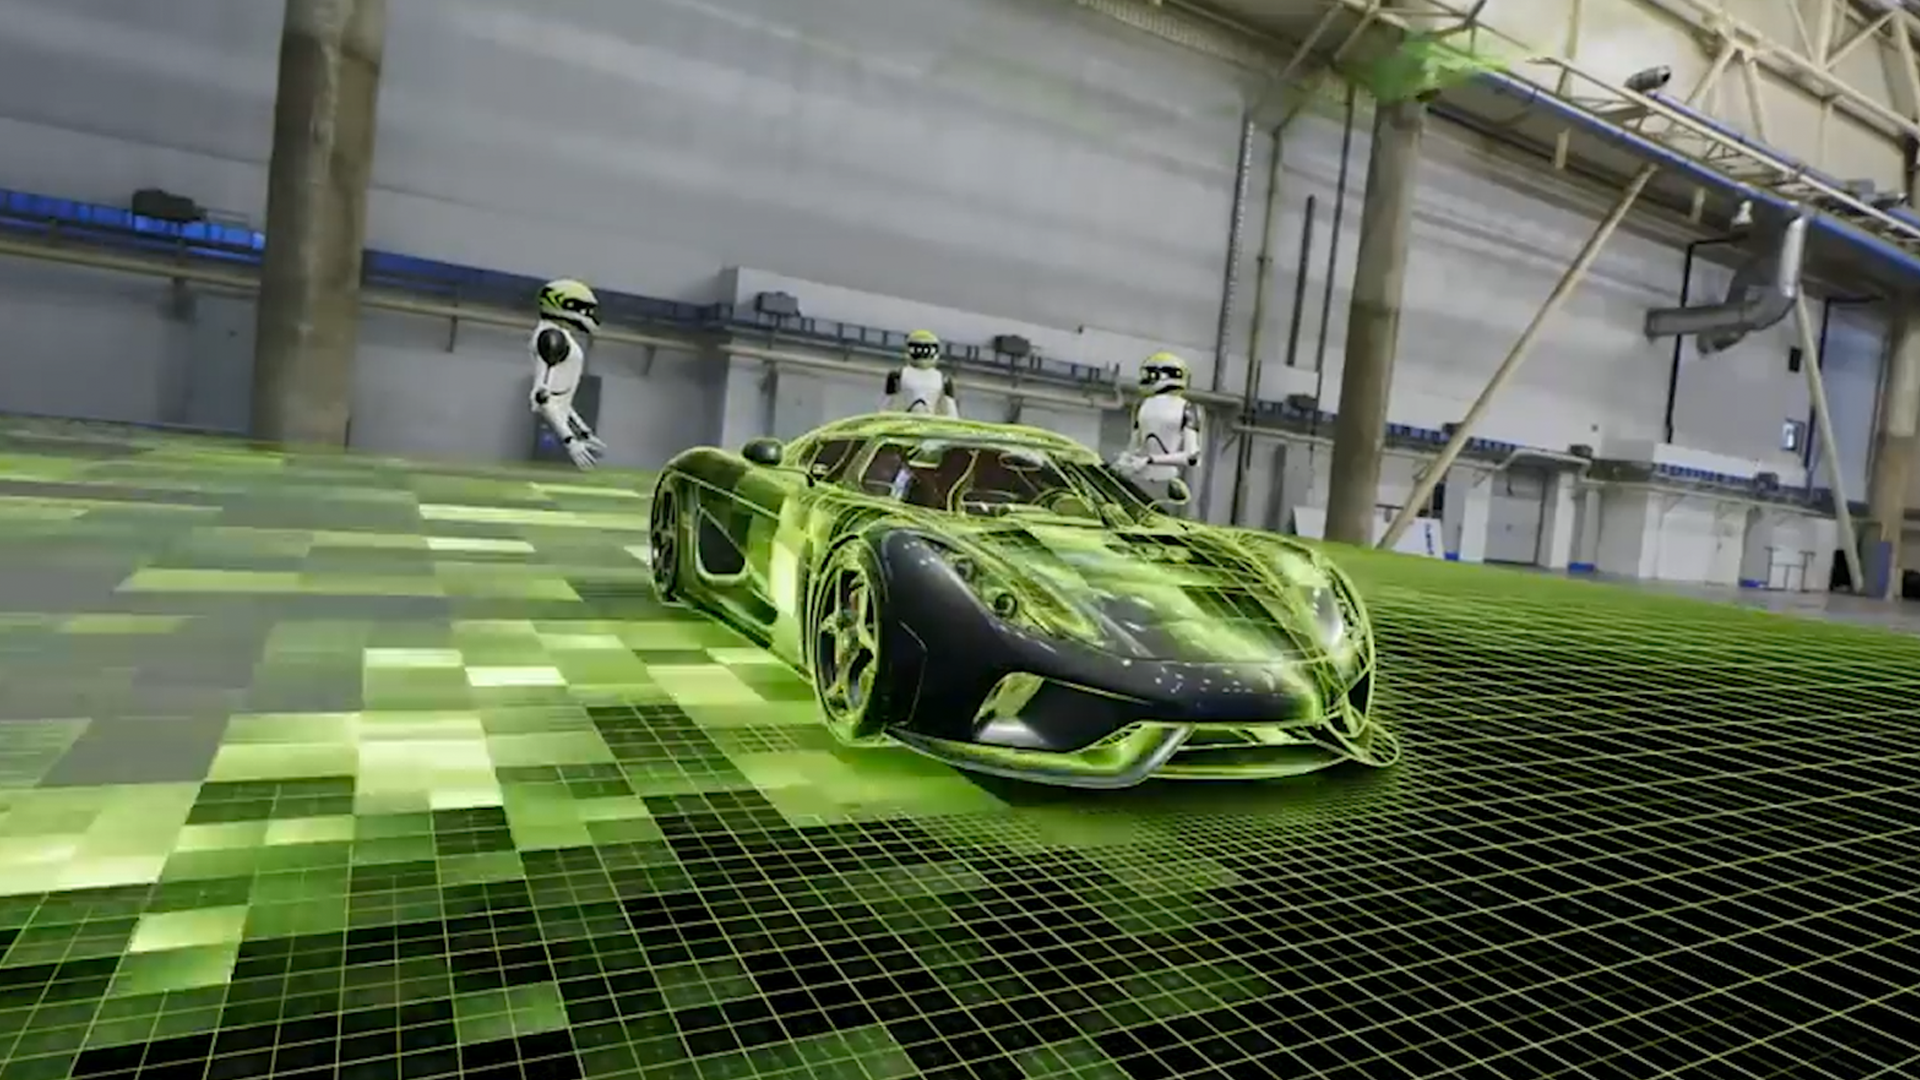 Nvidia built a real Holodeck, aimed at creative collaboration